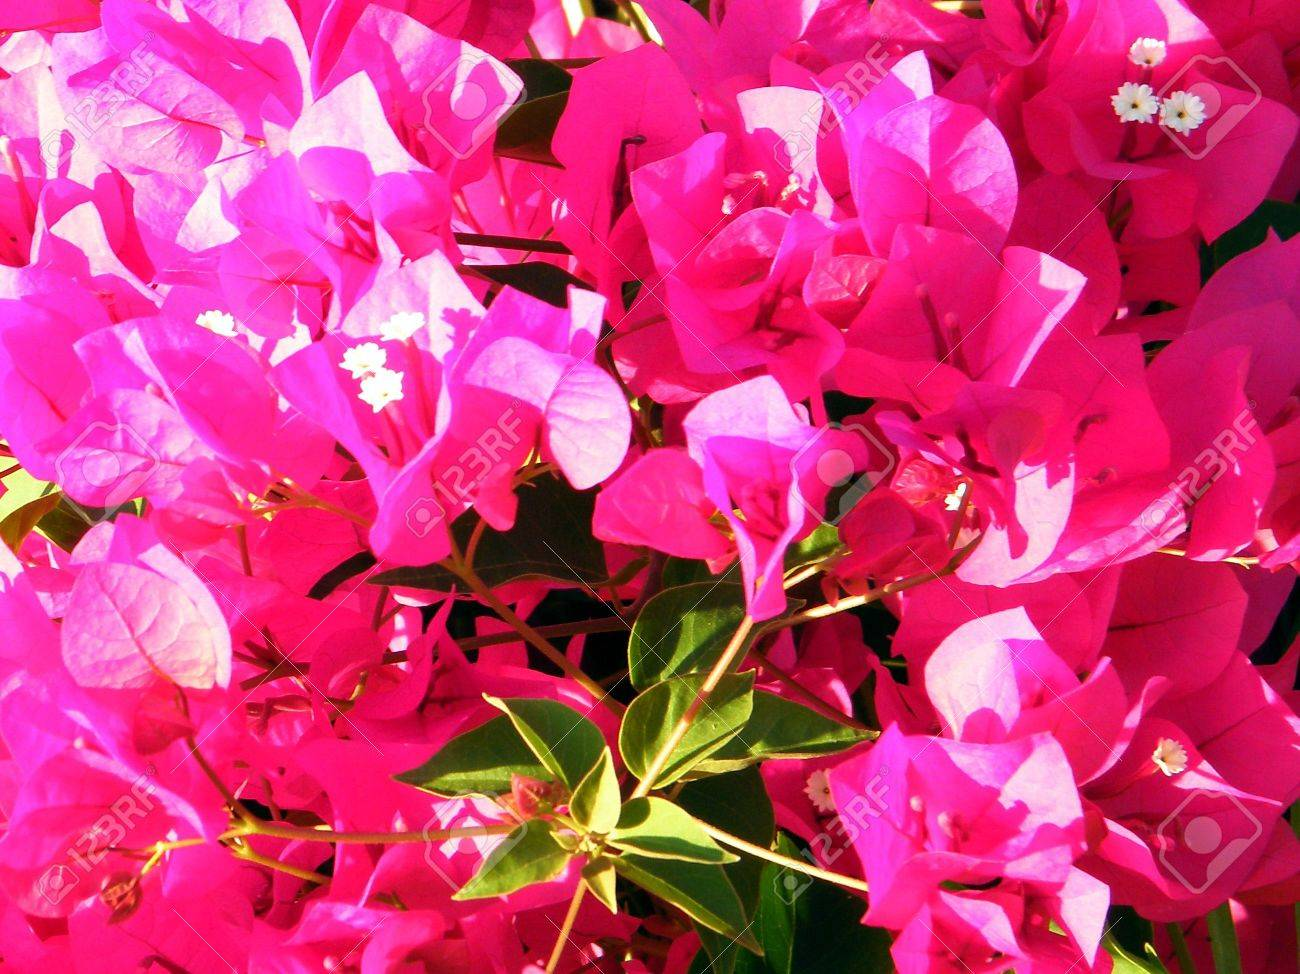 Red Bougainvillia flowers in Or Yehuda, Israel Stock Photo - 7833401